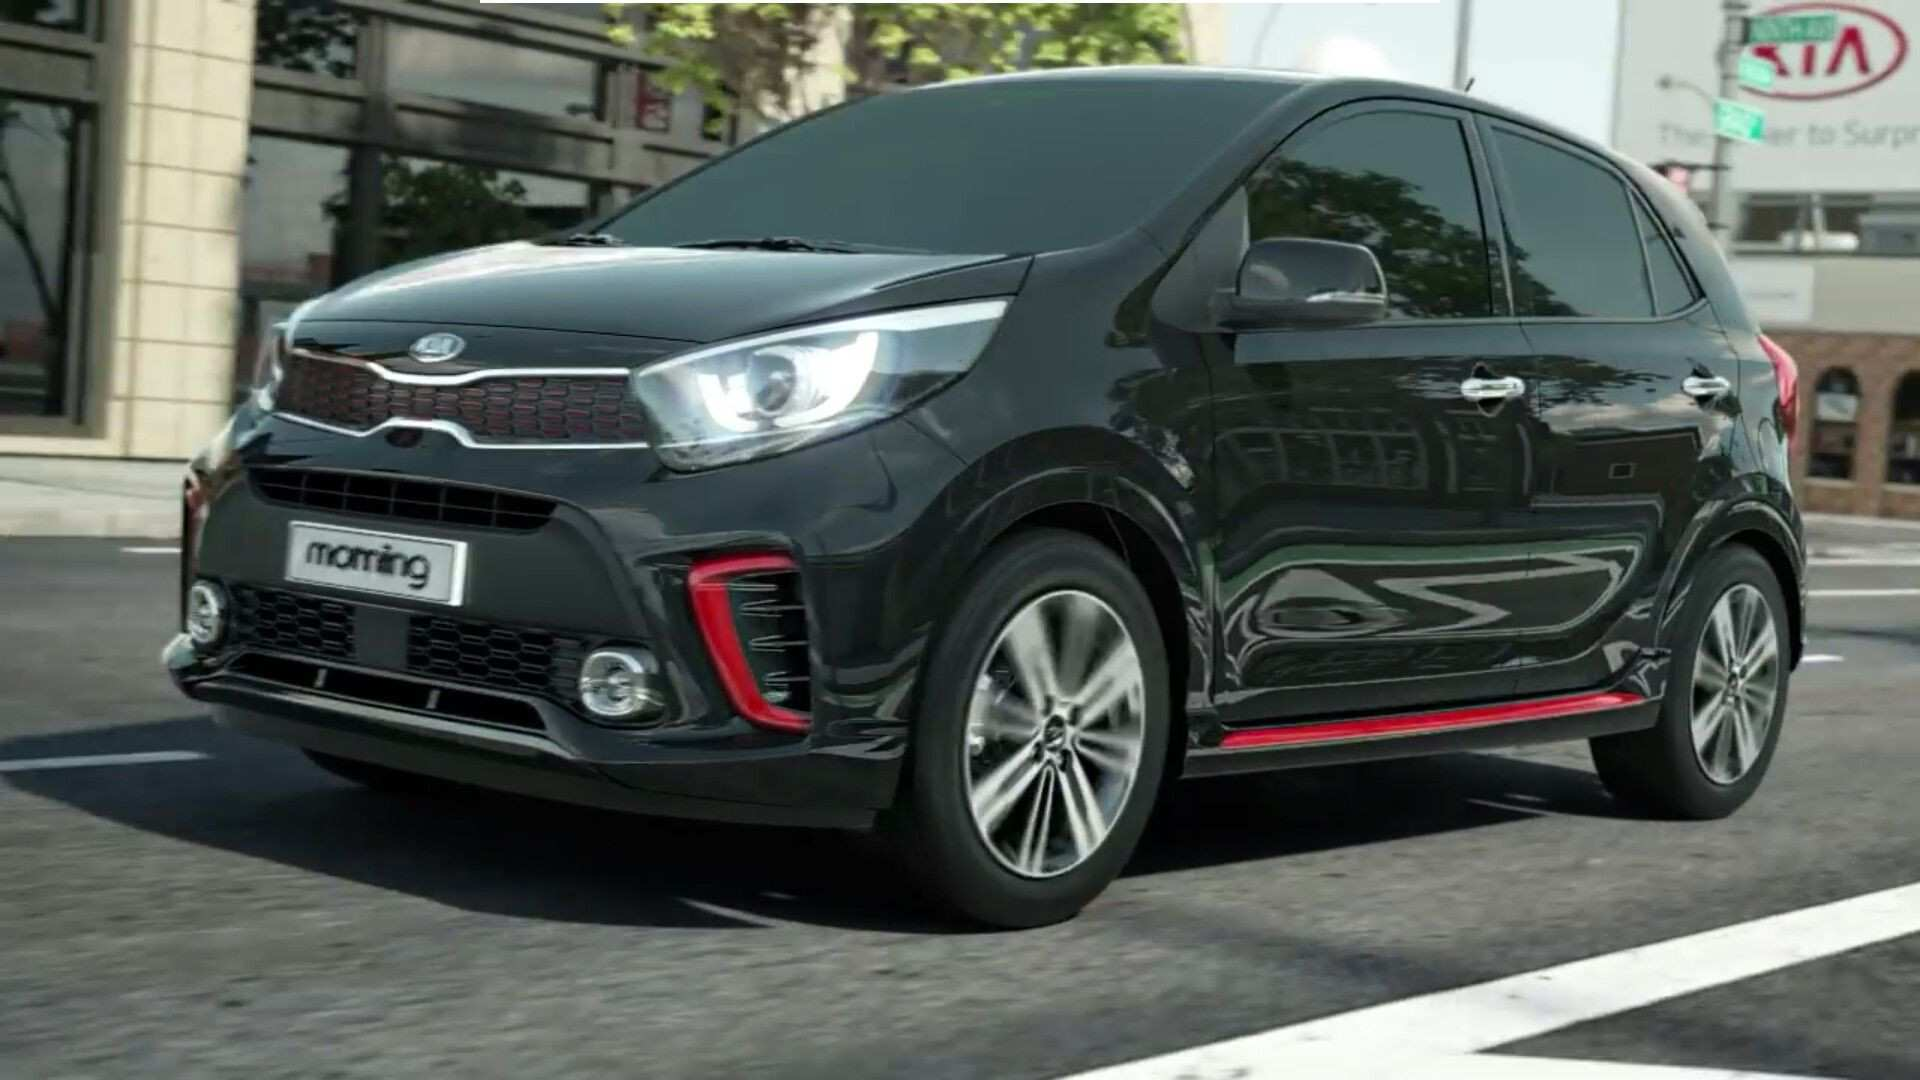 57 Great 2020 Kia Carens Egypt Prices with 2020 Kia Carens Egypt